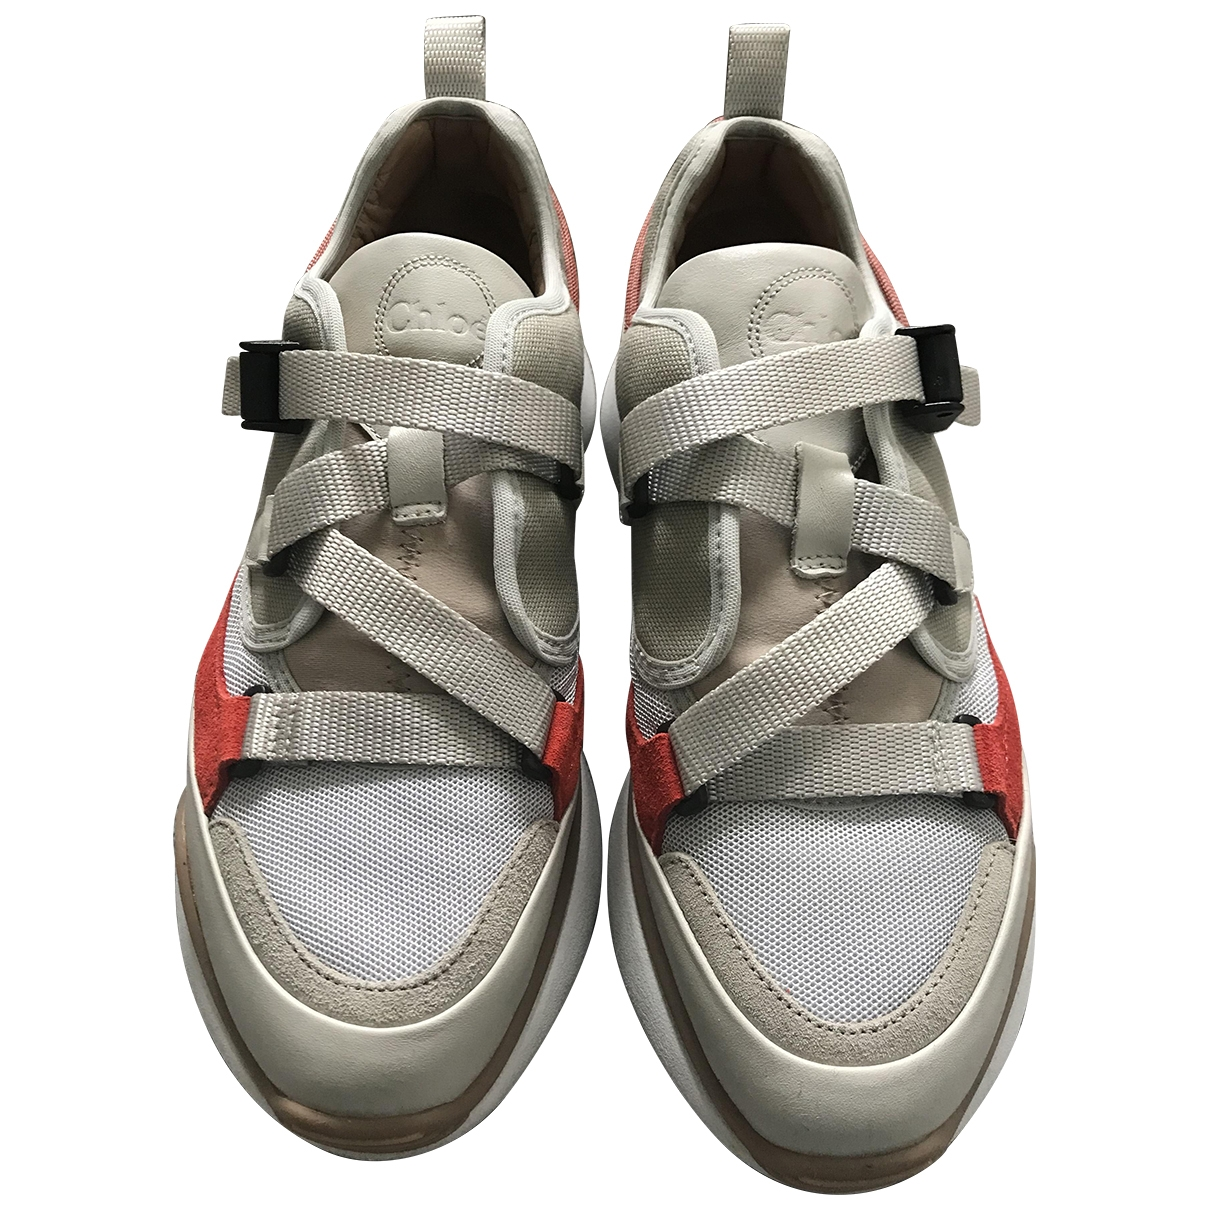 Chloe Sonnie Sneakers in  Beige Leinen